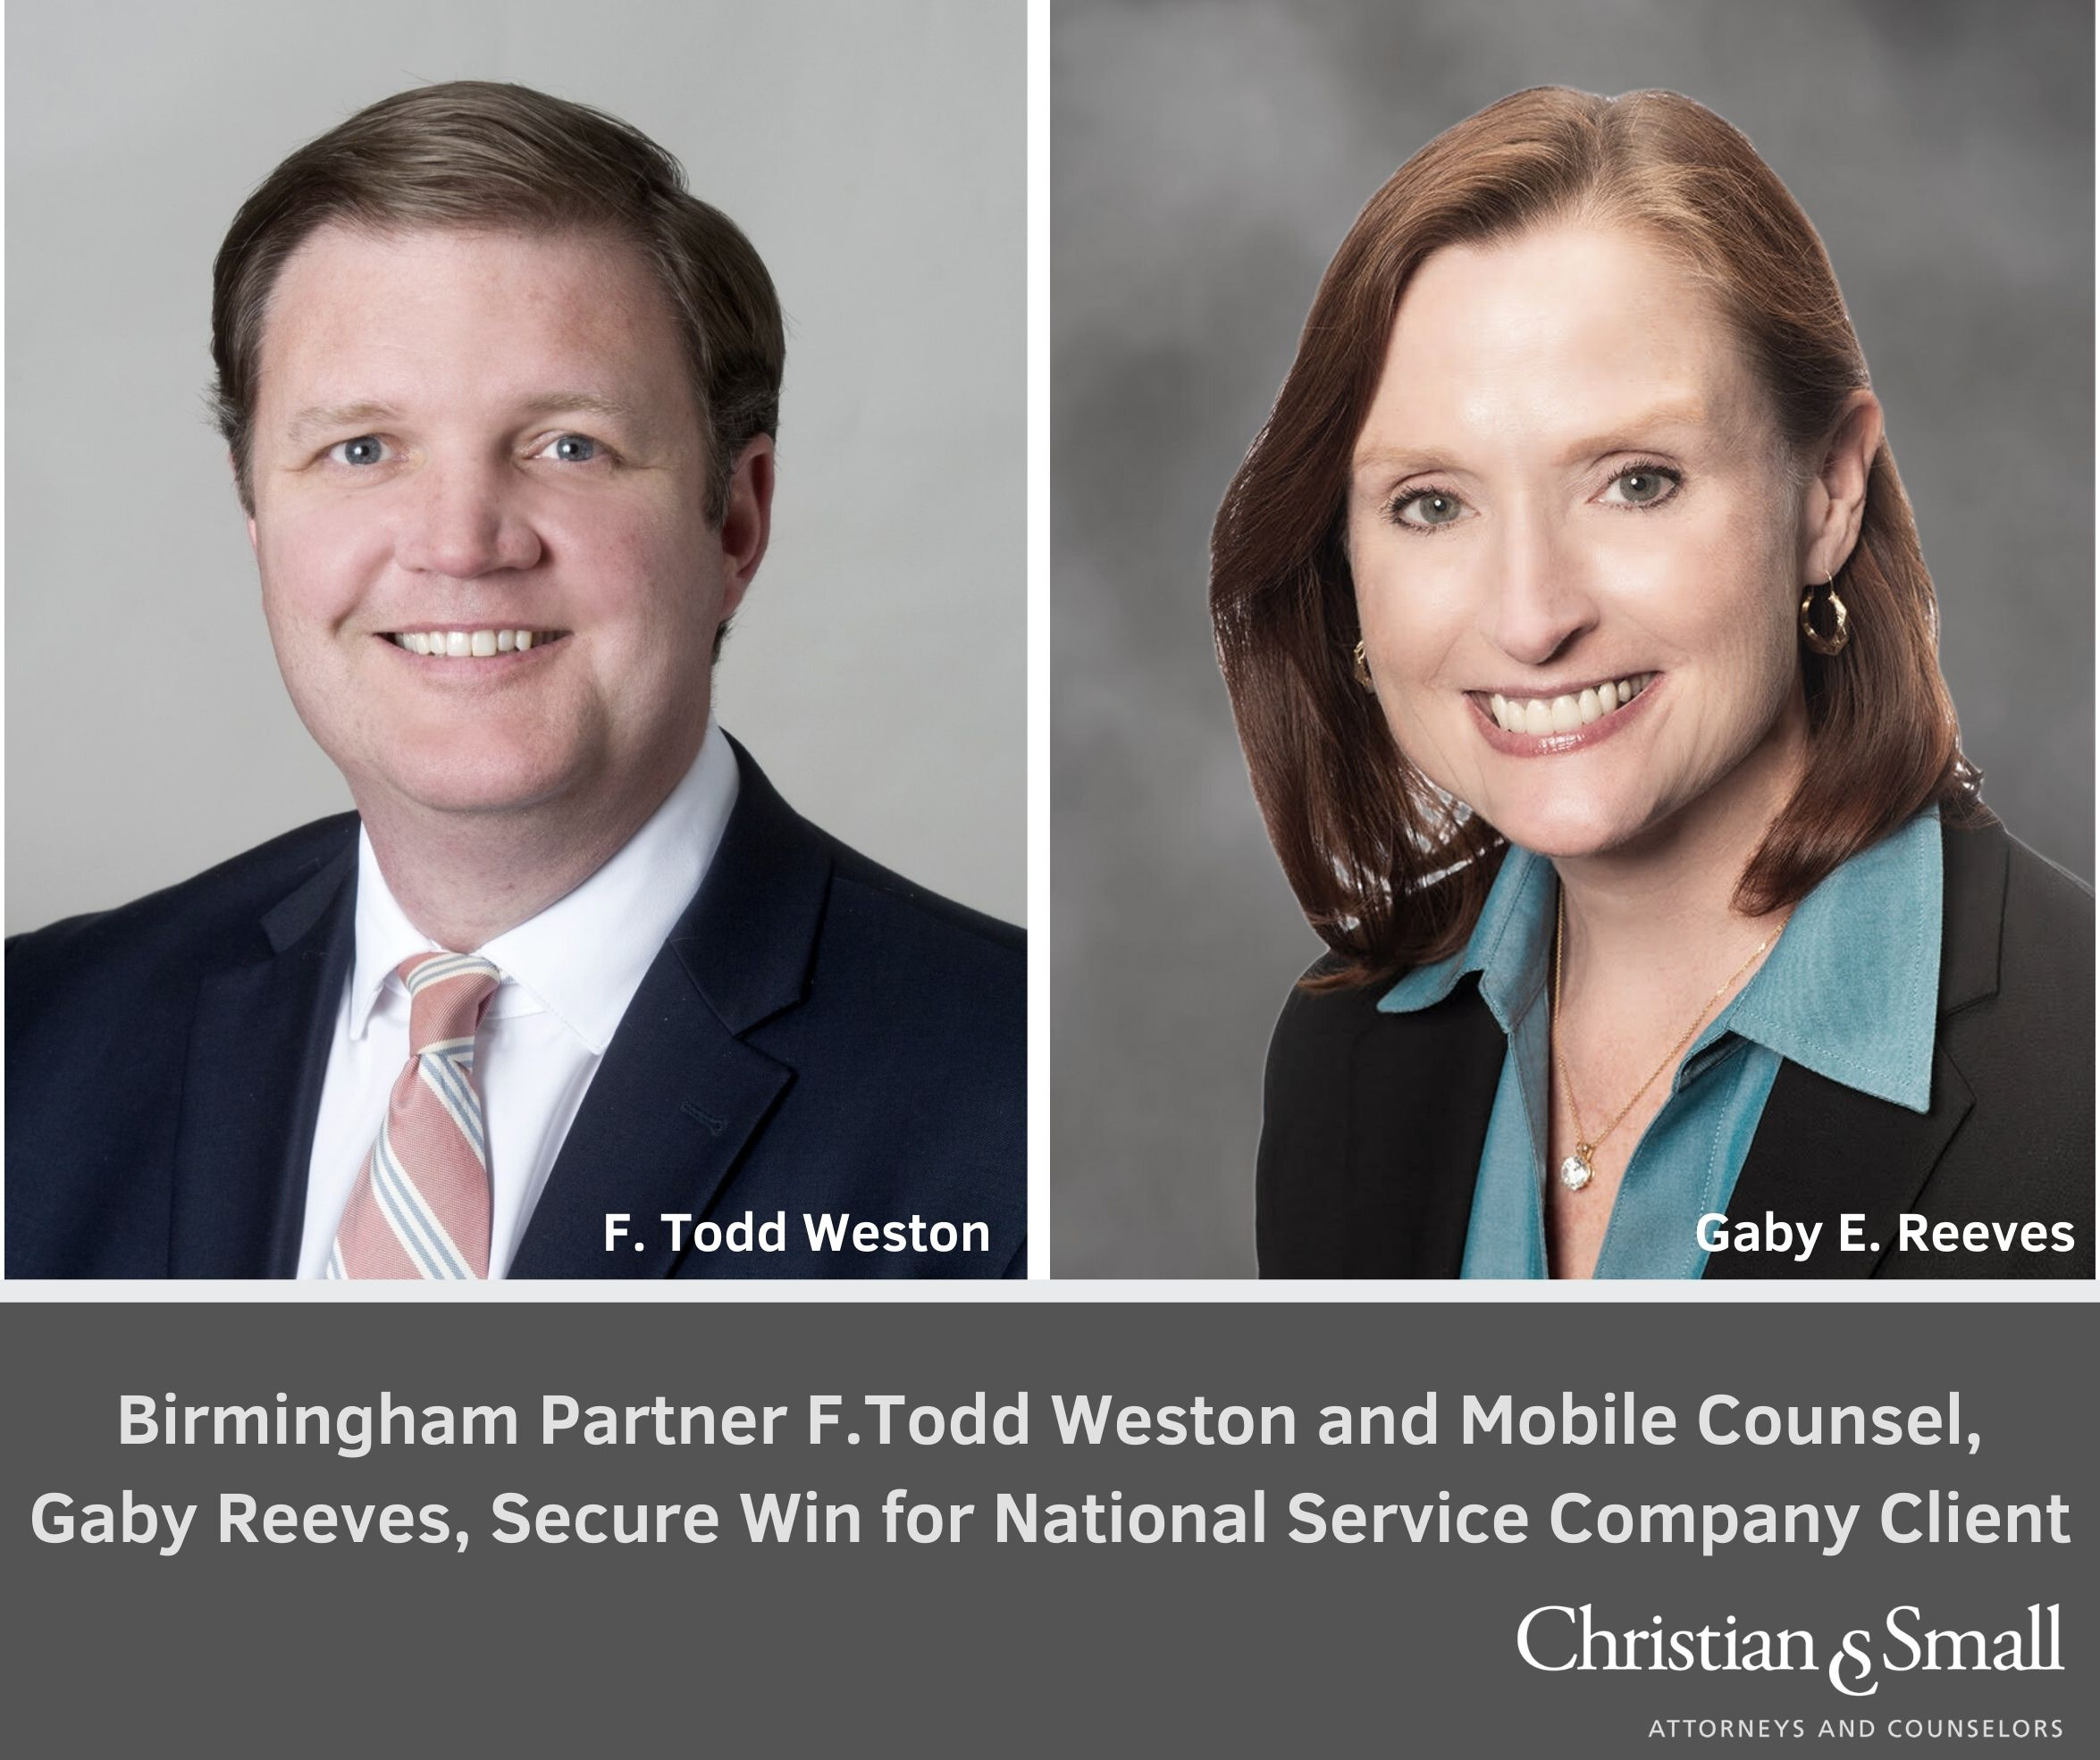 F. Todd Weston and  Gaby Reeves Secure Win for National Service Company Client on Motion to Dismiss in Etowah County, Alabama